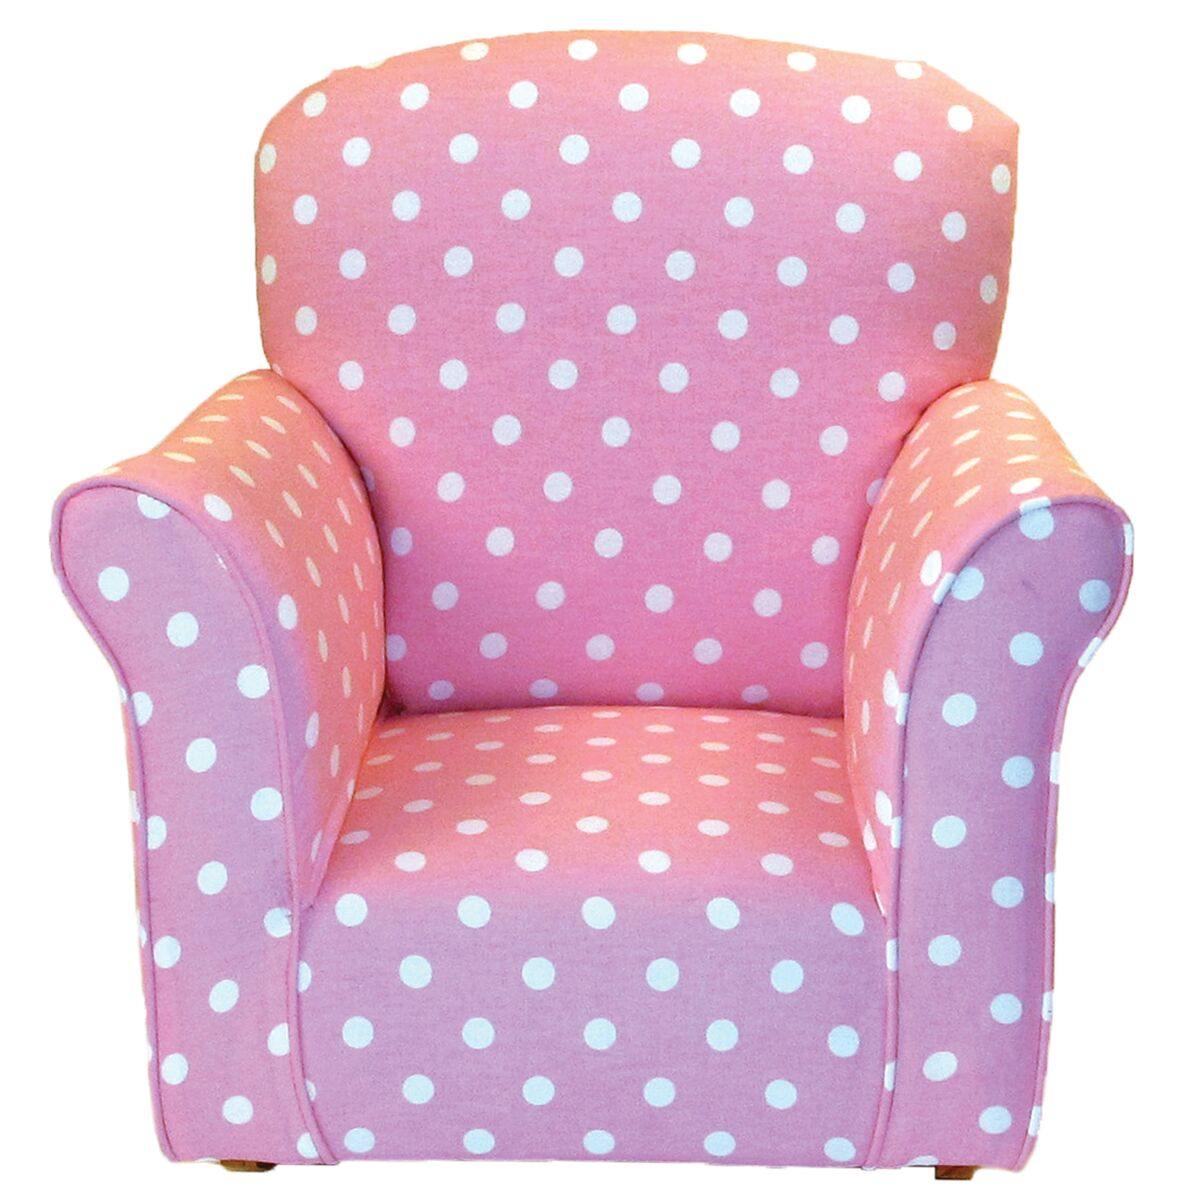 Brighton Home Furniture Toddler Rocker in Baby Pink with White Polka Dot Printed Cotton